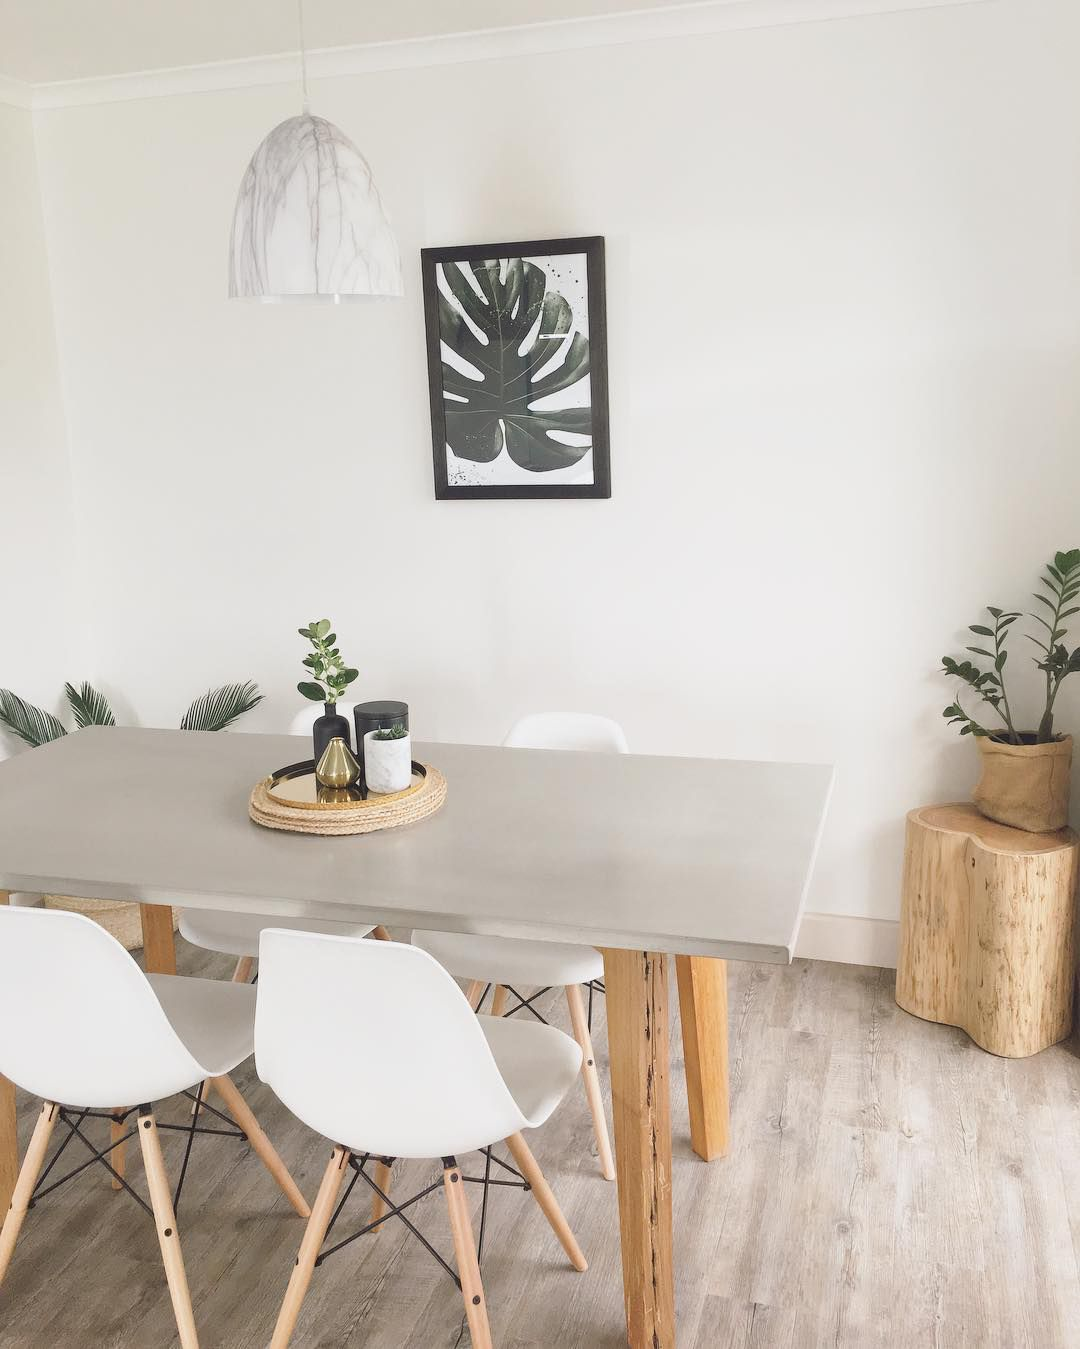 Ways To Decorate With Concrete Accents - Concrete dining table maintenance